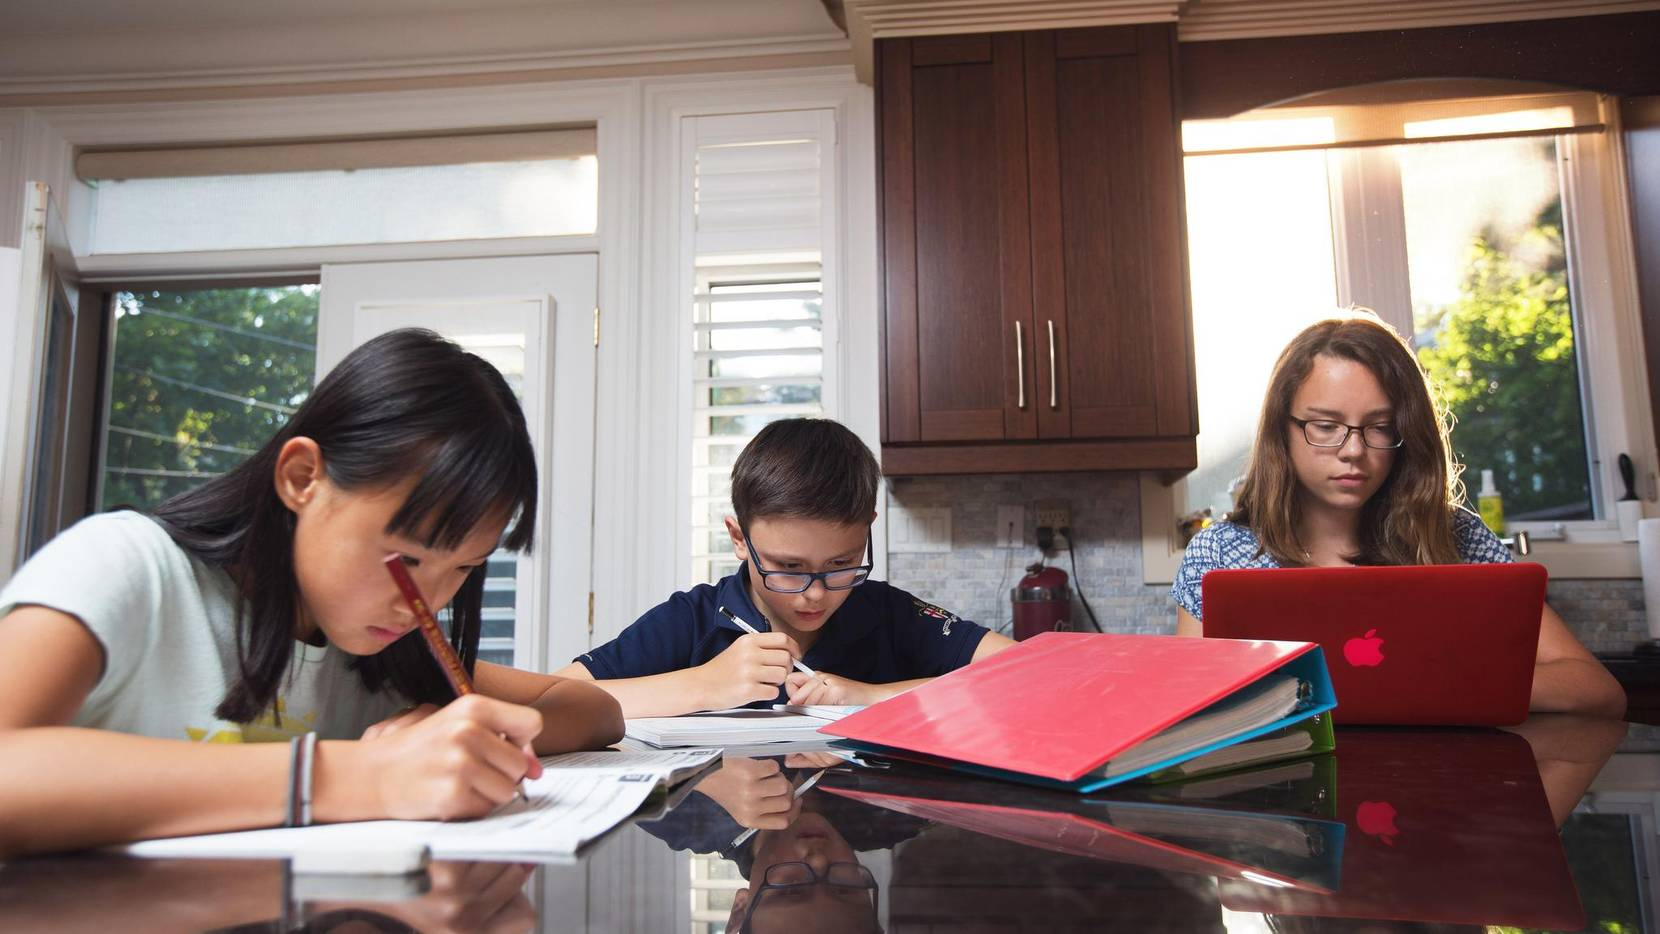 homework helps students succeed in school Homework help 5th grade math homework helps students succeed in school dna coursework essay about novel phd homework helps students succeed thesis anupam duke study homework helps students succeed essay essay writing service homework helps students succeed yahoo term paper writing format.